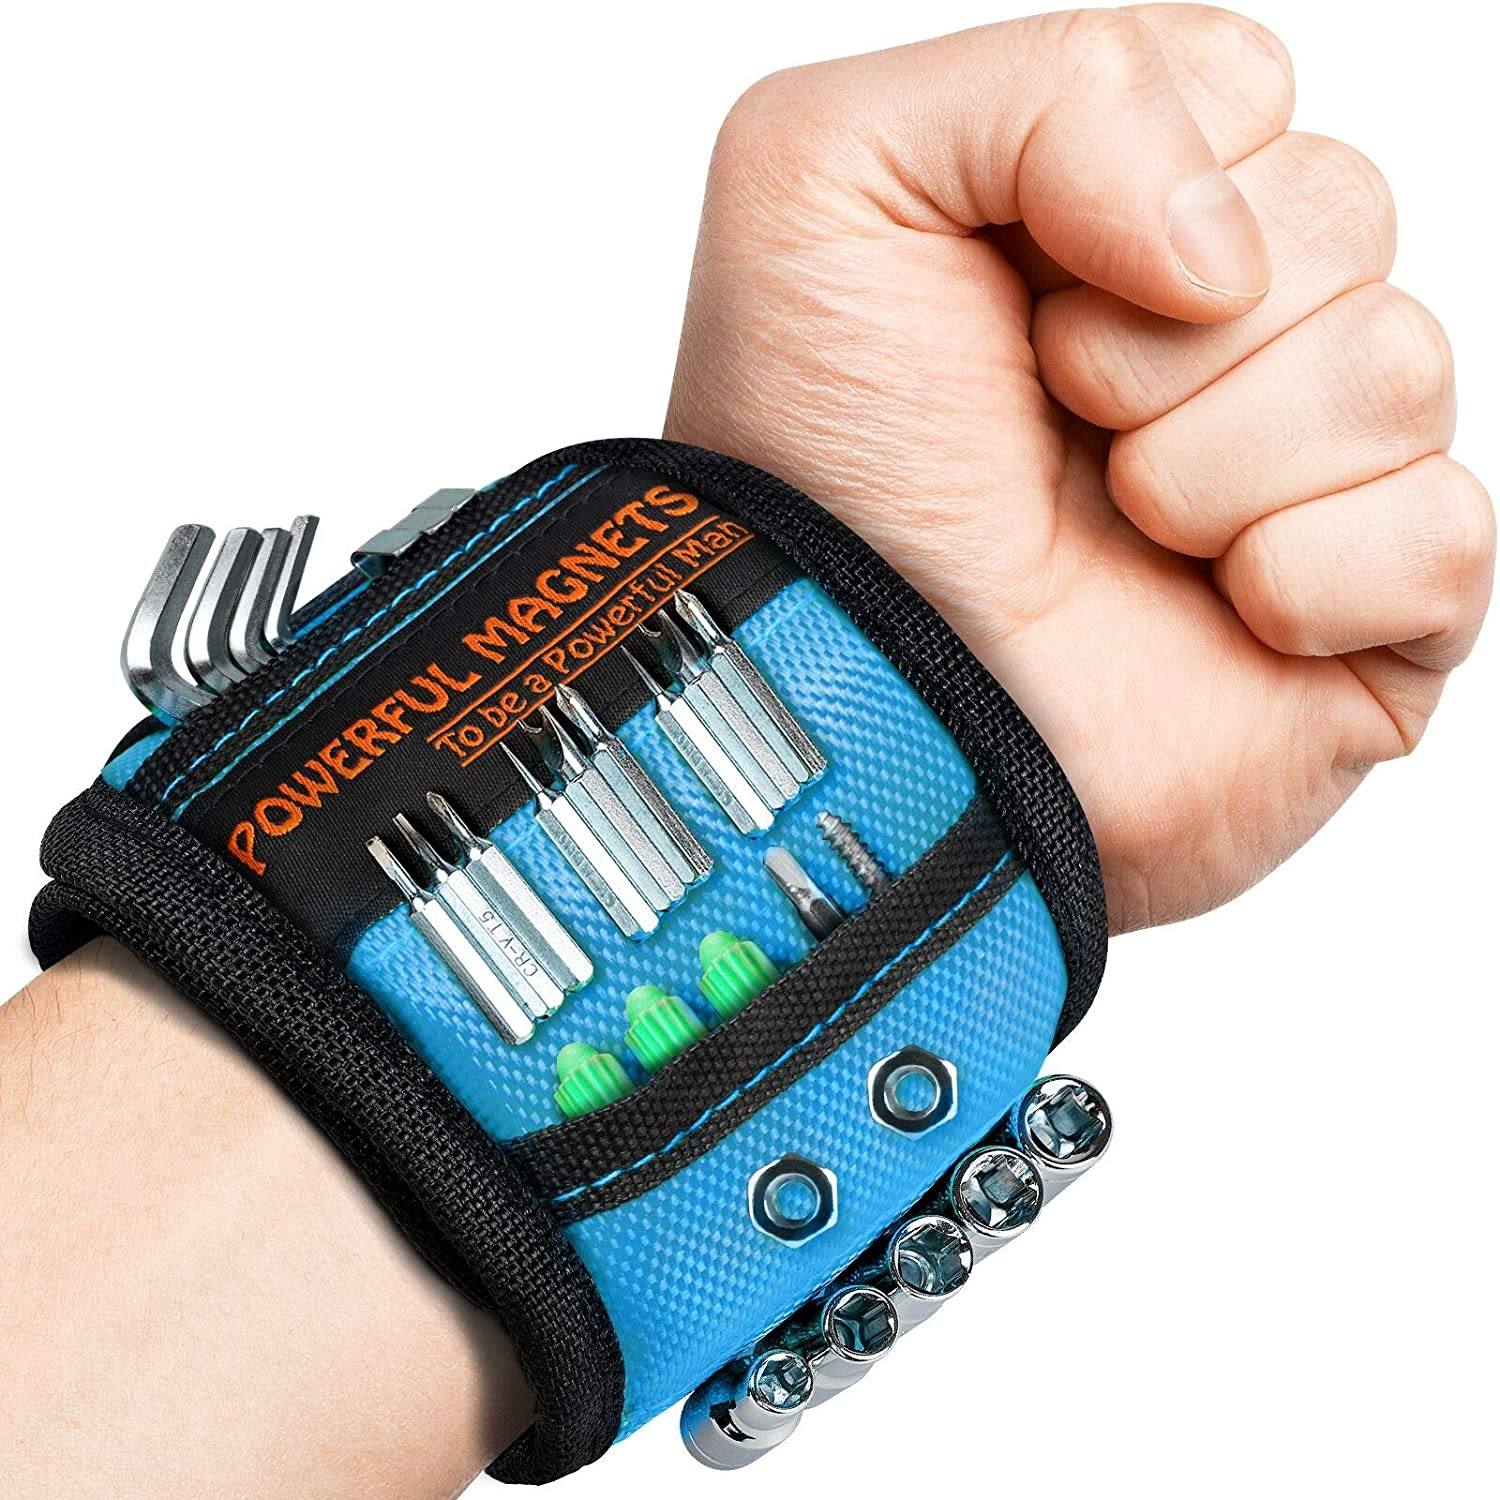 Magnetic Wristband Los Angeles Mall Upgraded Tool Max 55% OFF Wrist Belt Hold